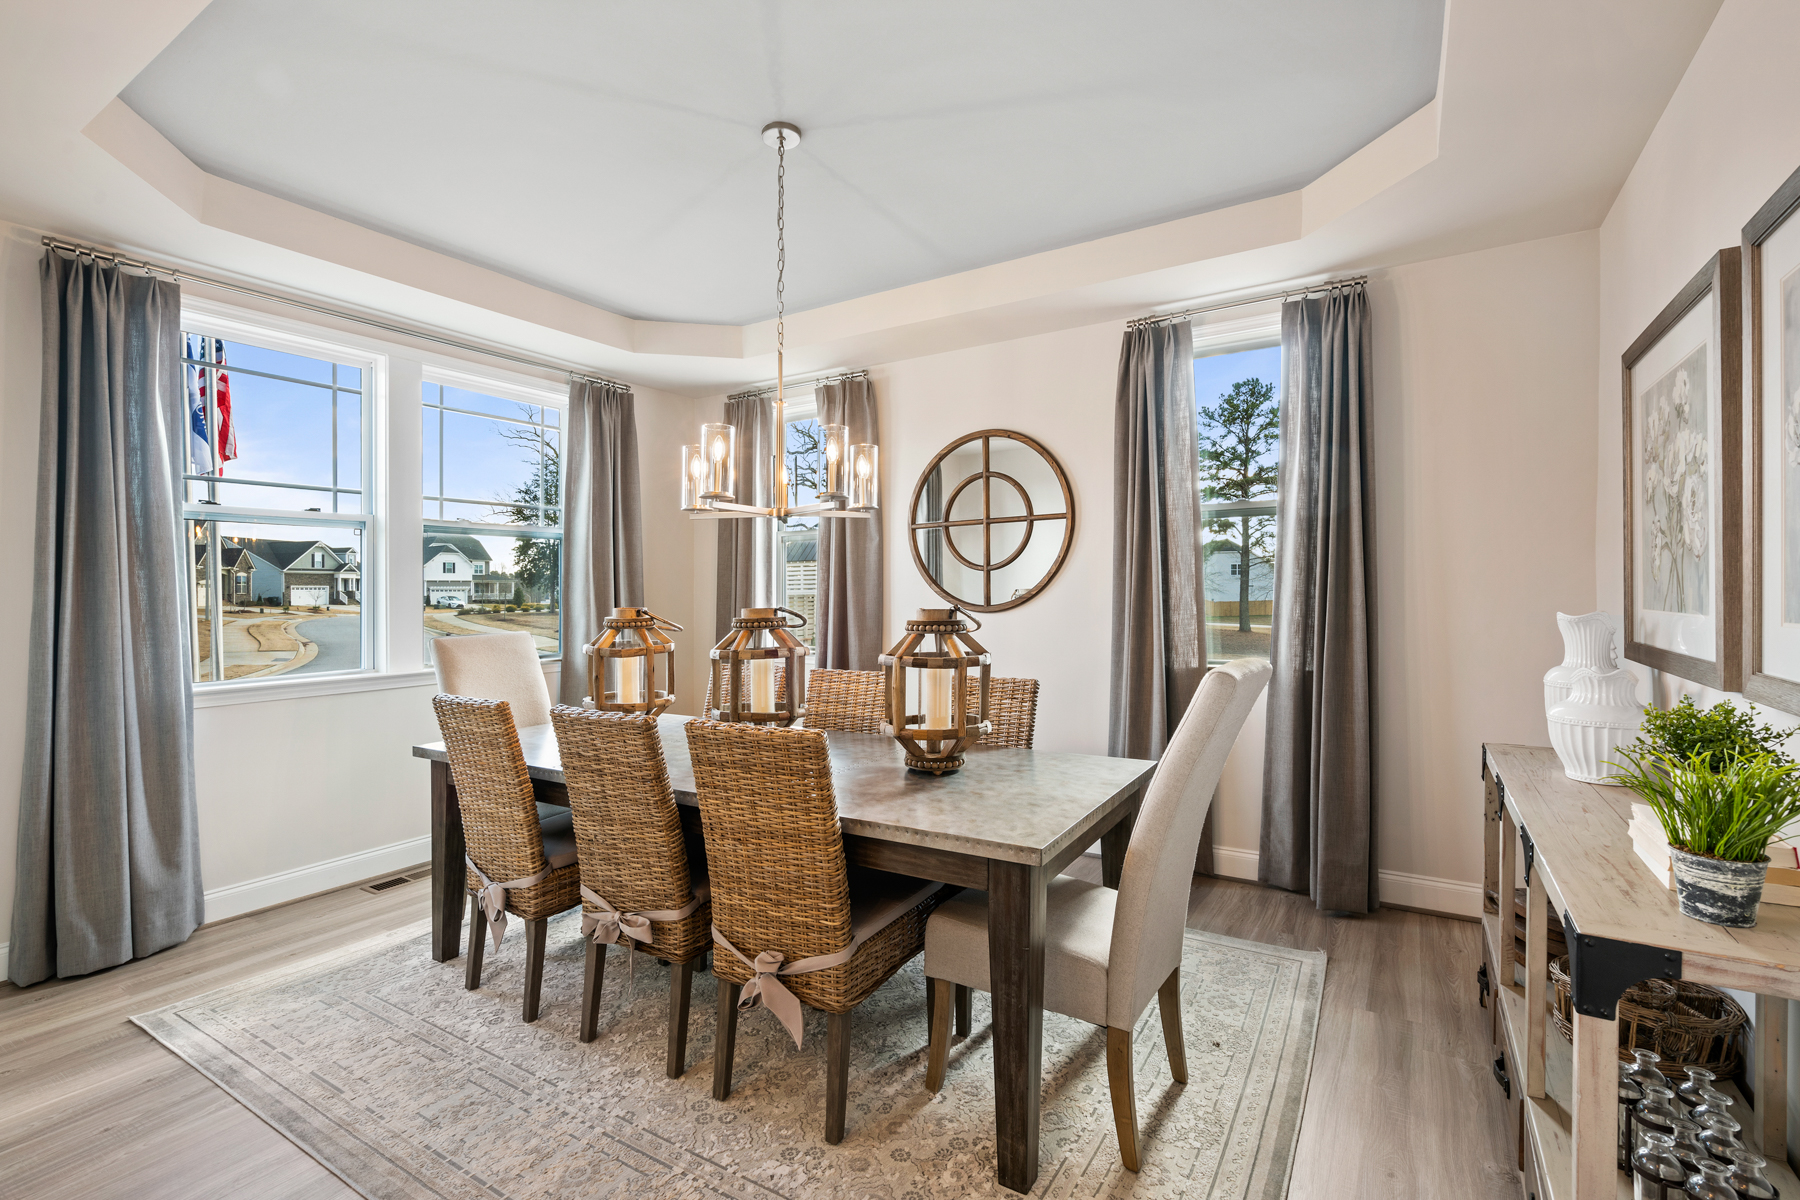 Parker Plan Dining at Ballentine Place in Holly Springs North Carolina by Mattamy Homes